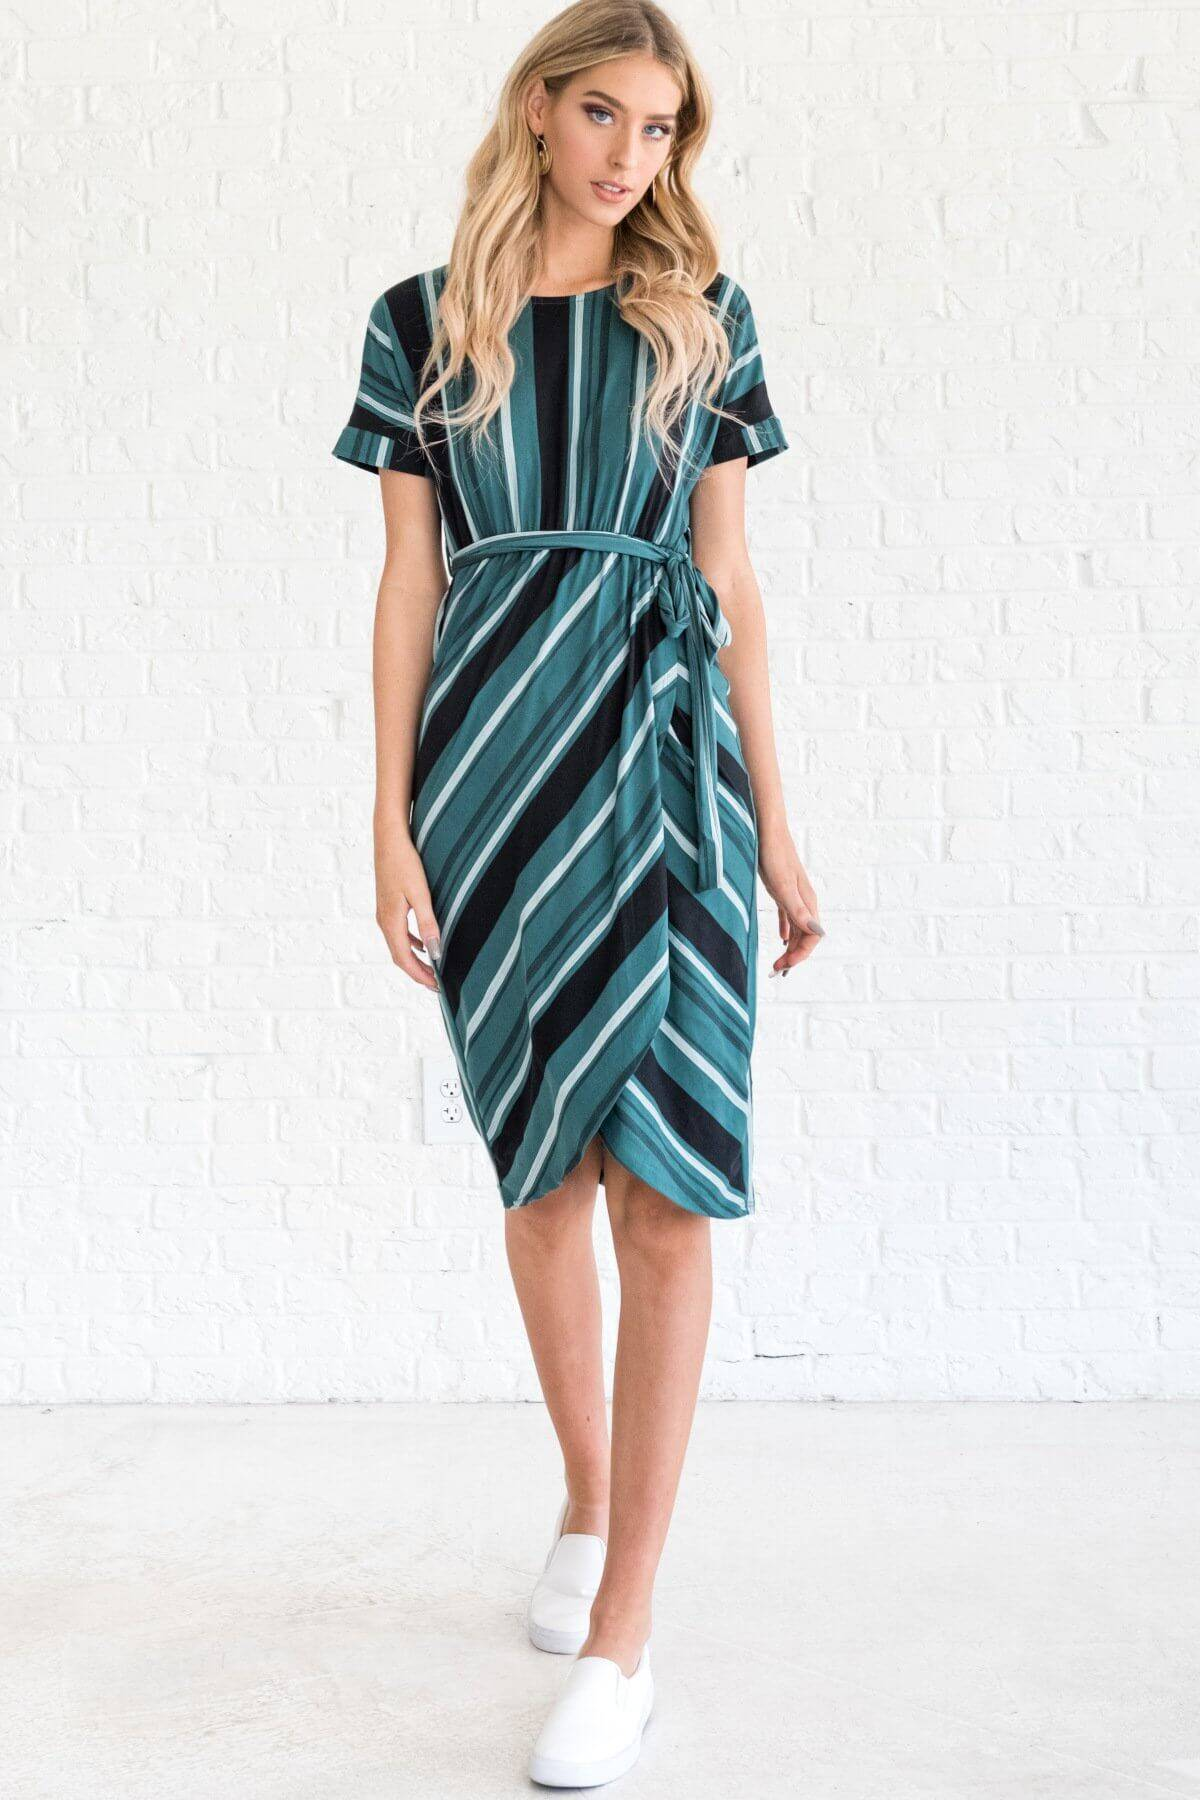 Teal White Black Striped Short Sleeve Knee Length Dresses